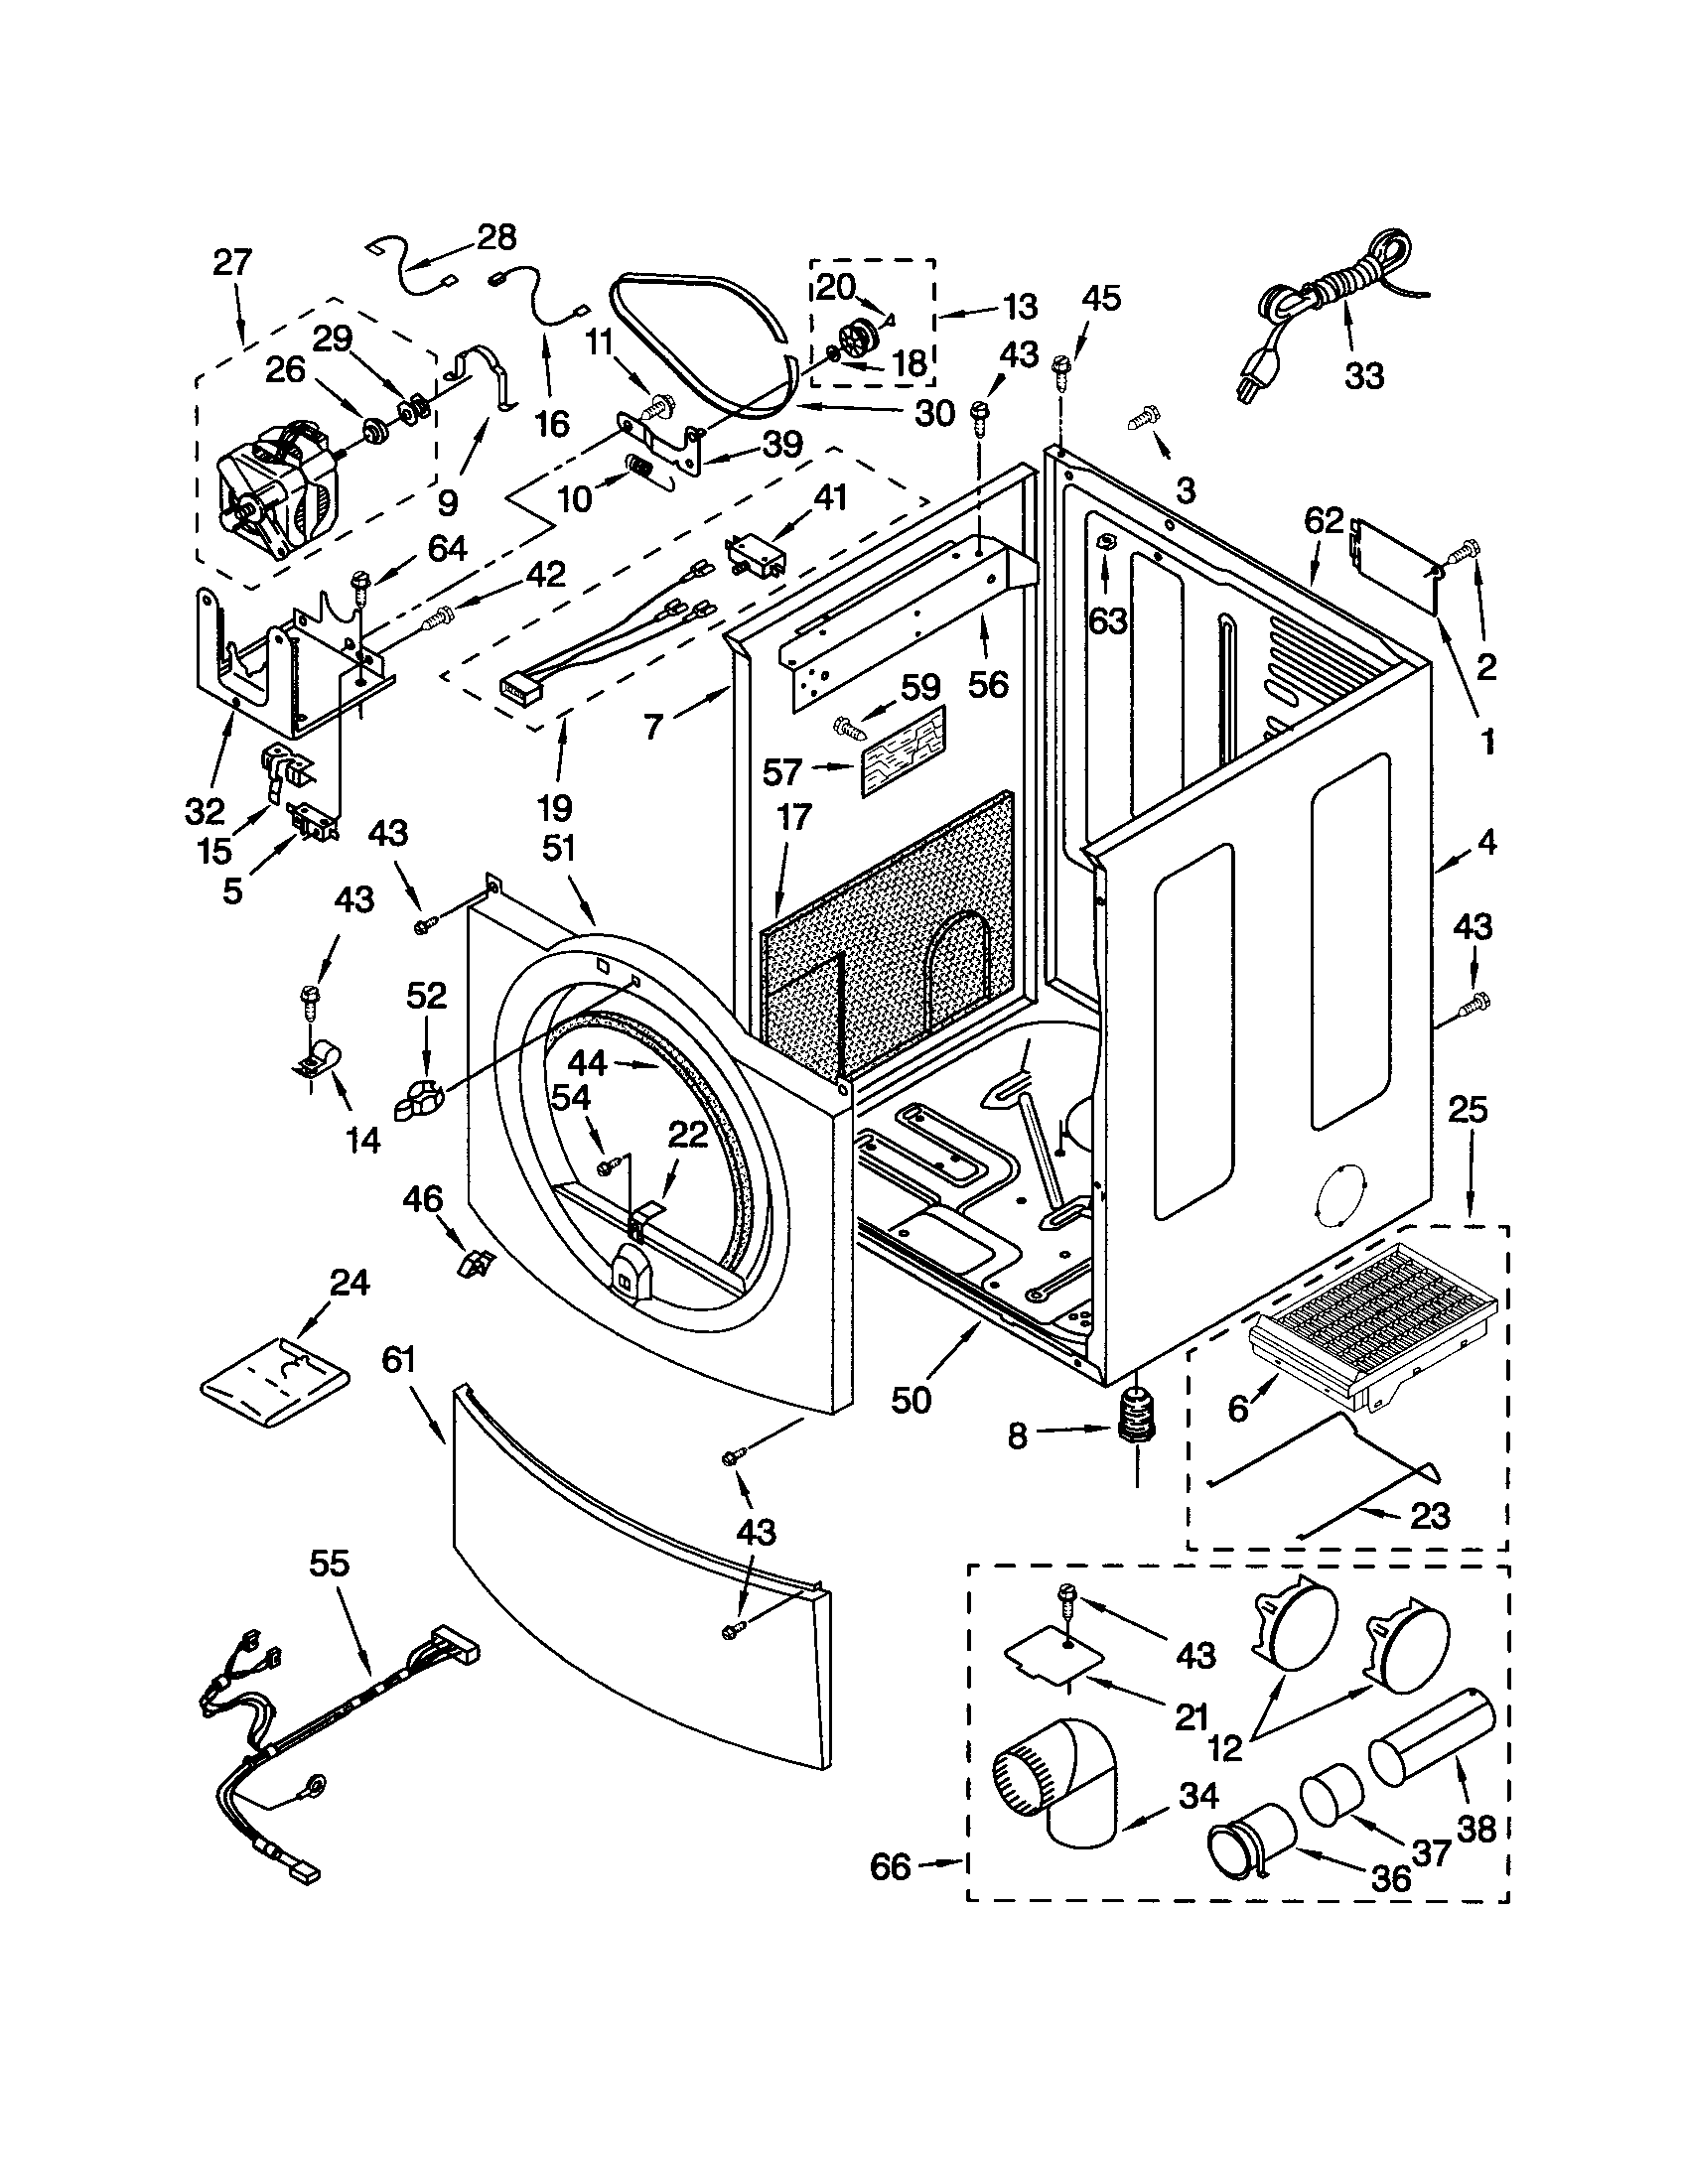 CABINET Diagram & Parts List for Model 11092822102 Kenmore